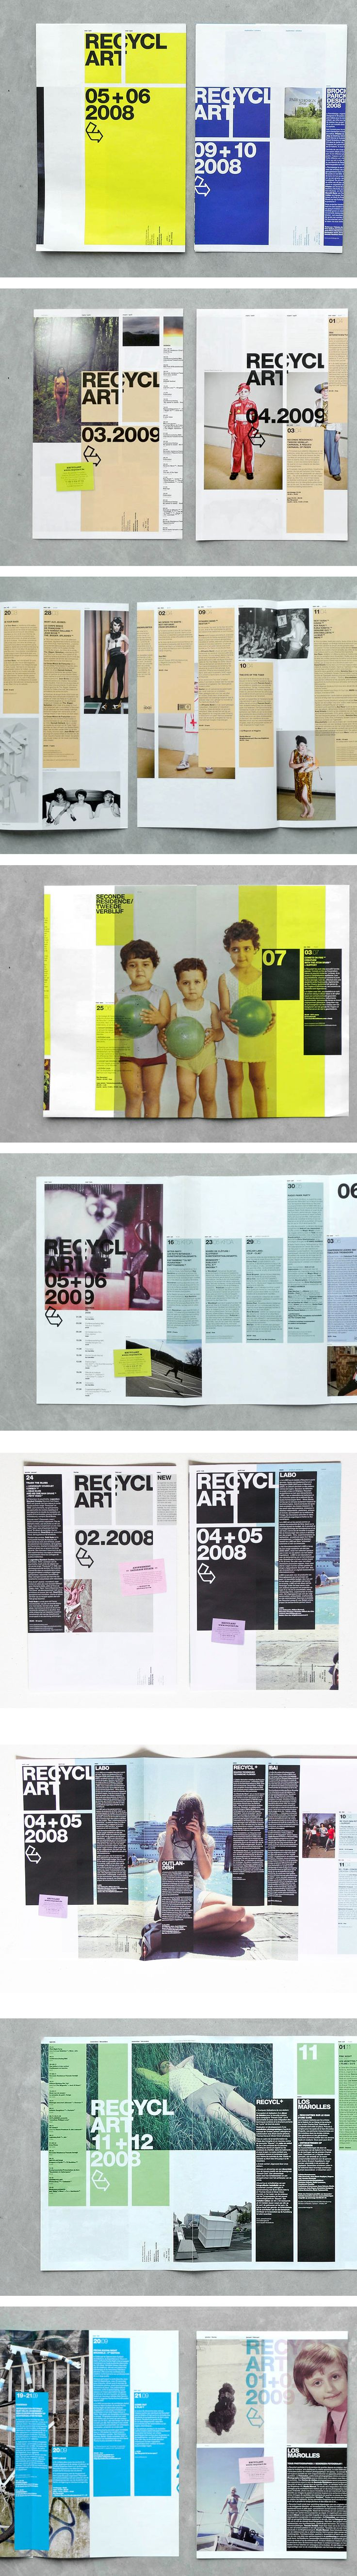 Recyclart 2009 #magazine #layout I really like the color blocks and the photos and color scheme, this might be good for a fashion or modern art magazine